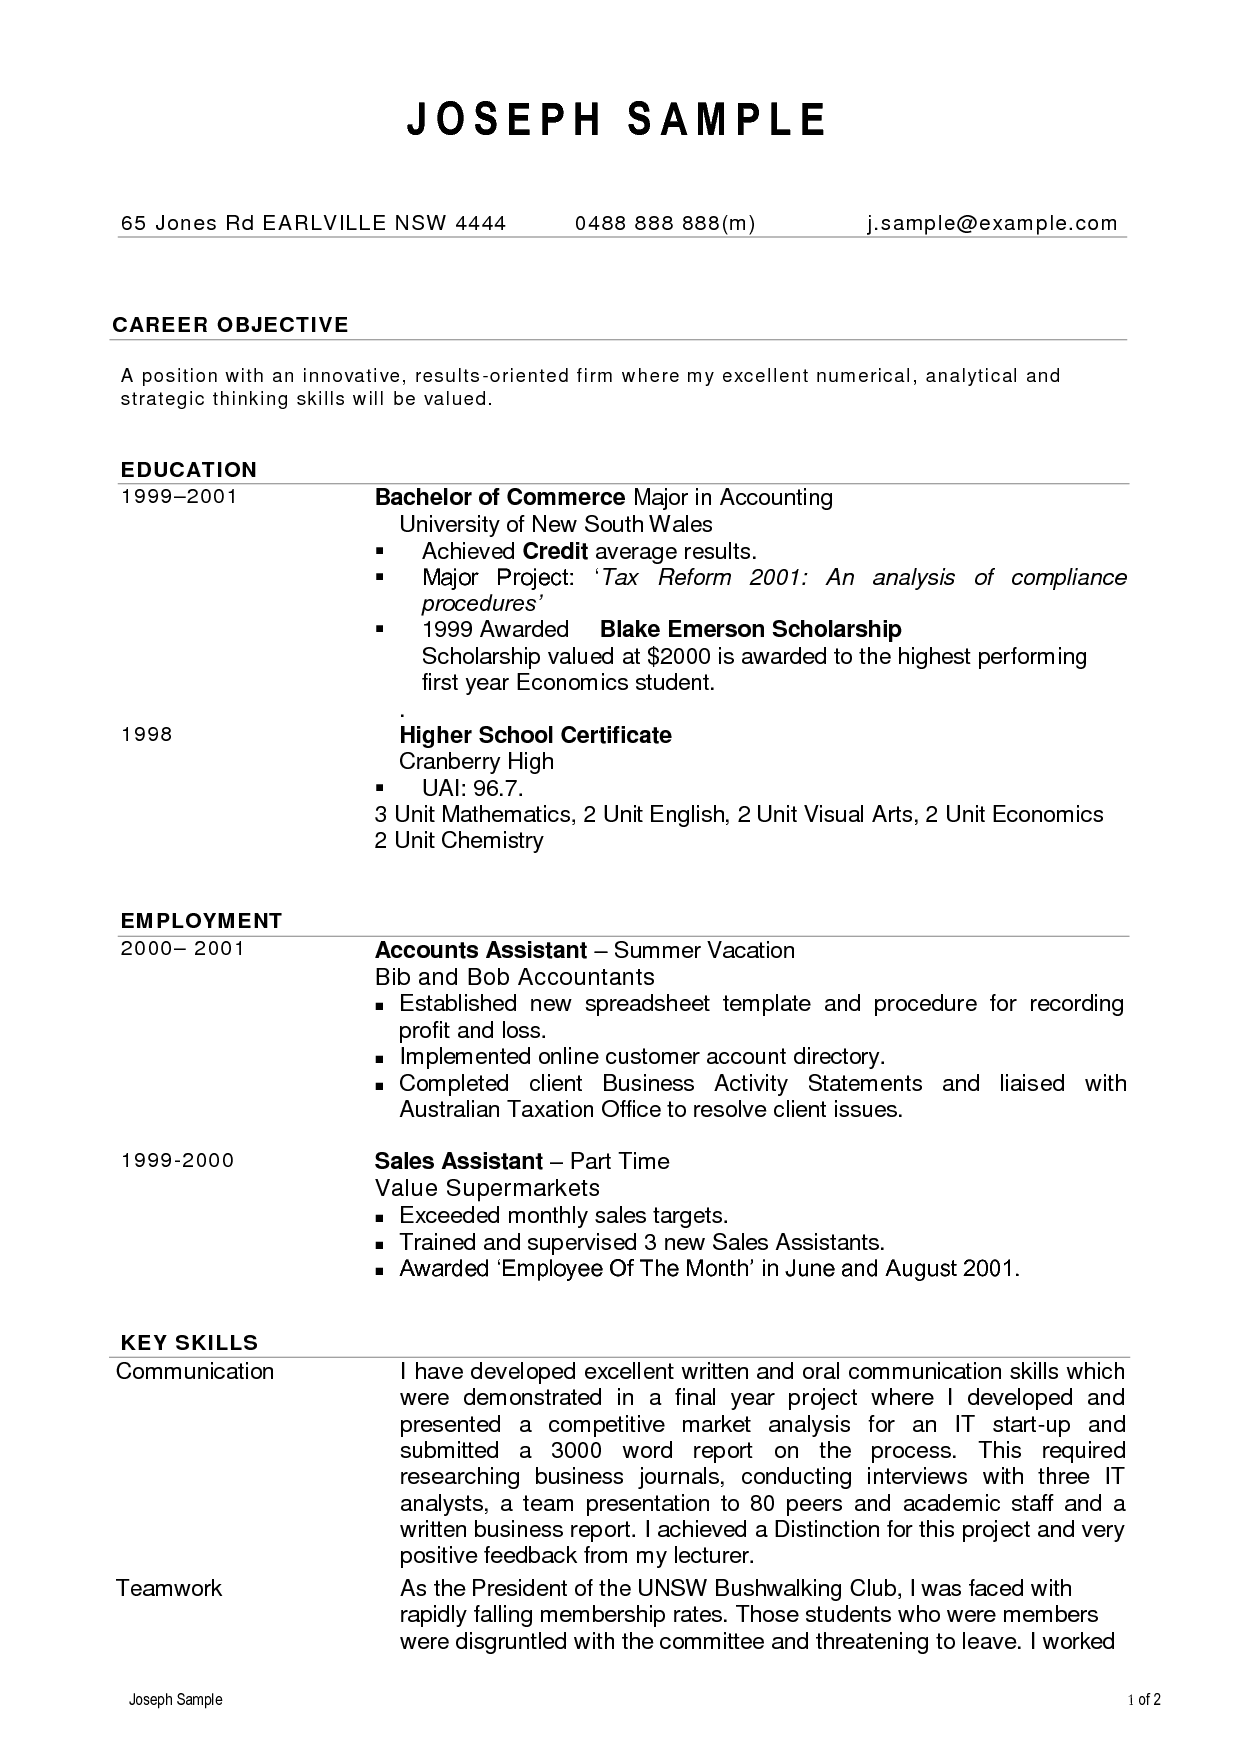 Resume For Accounting Effective Resume Formats  Resume Template  Pinterest  Resume Format